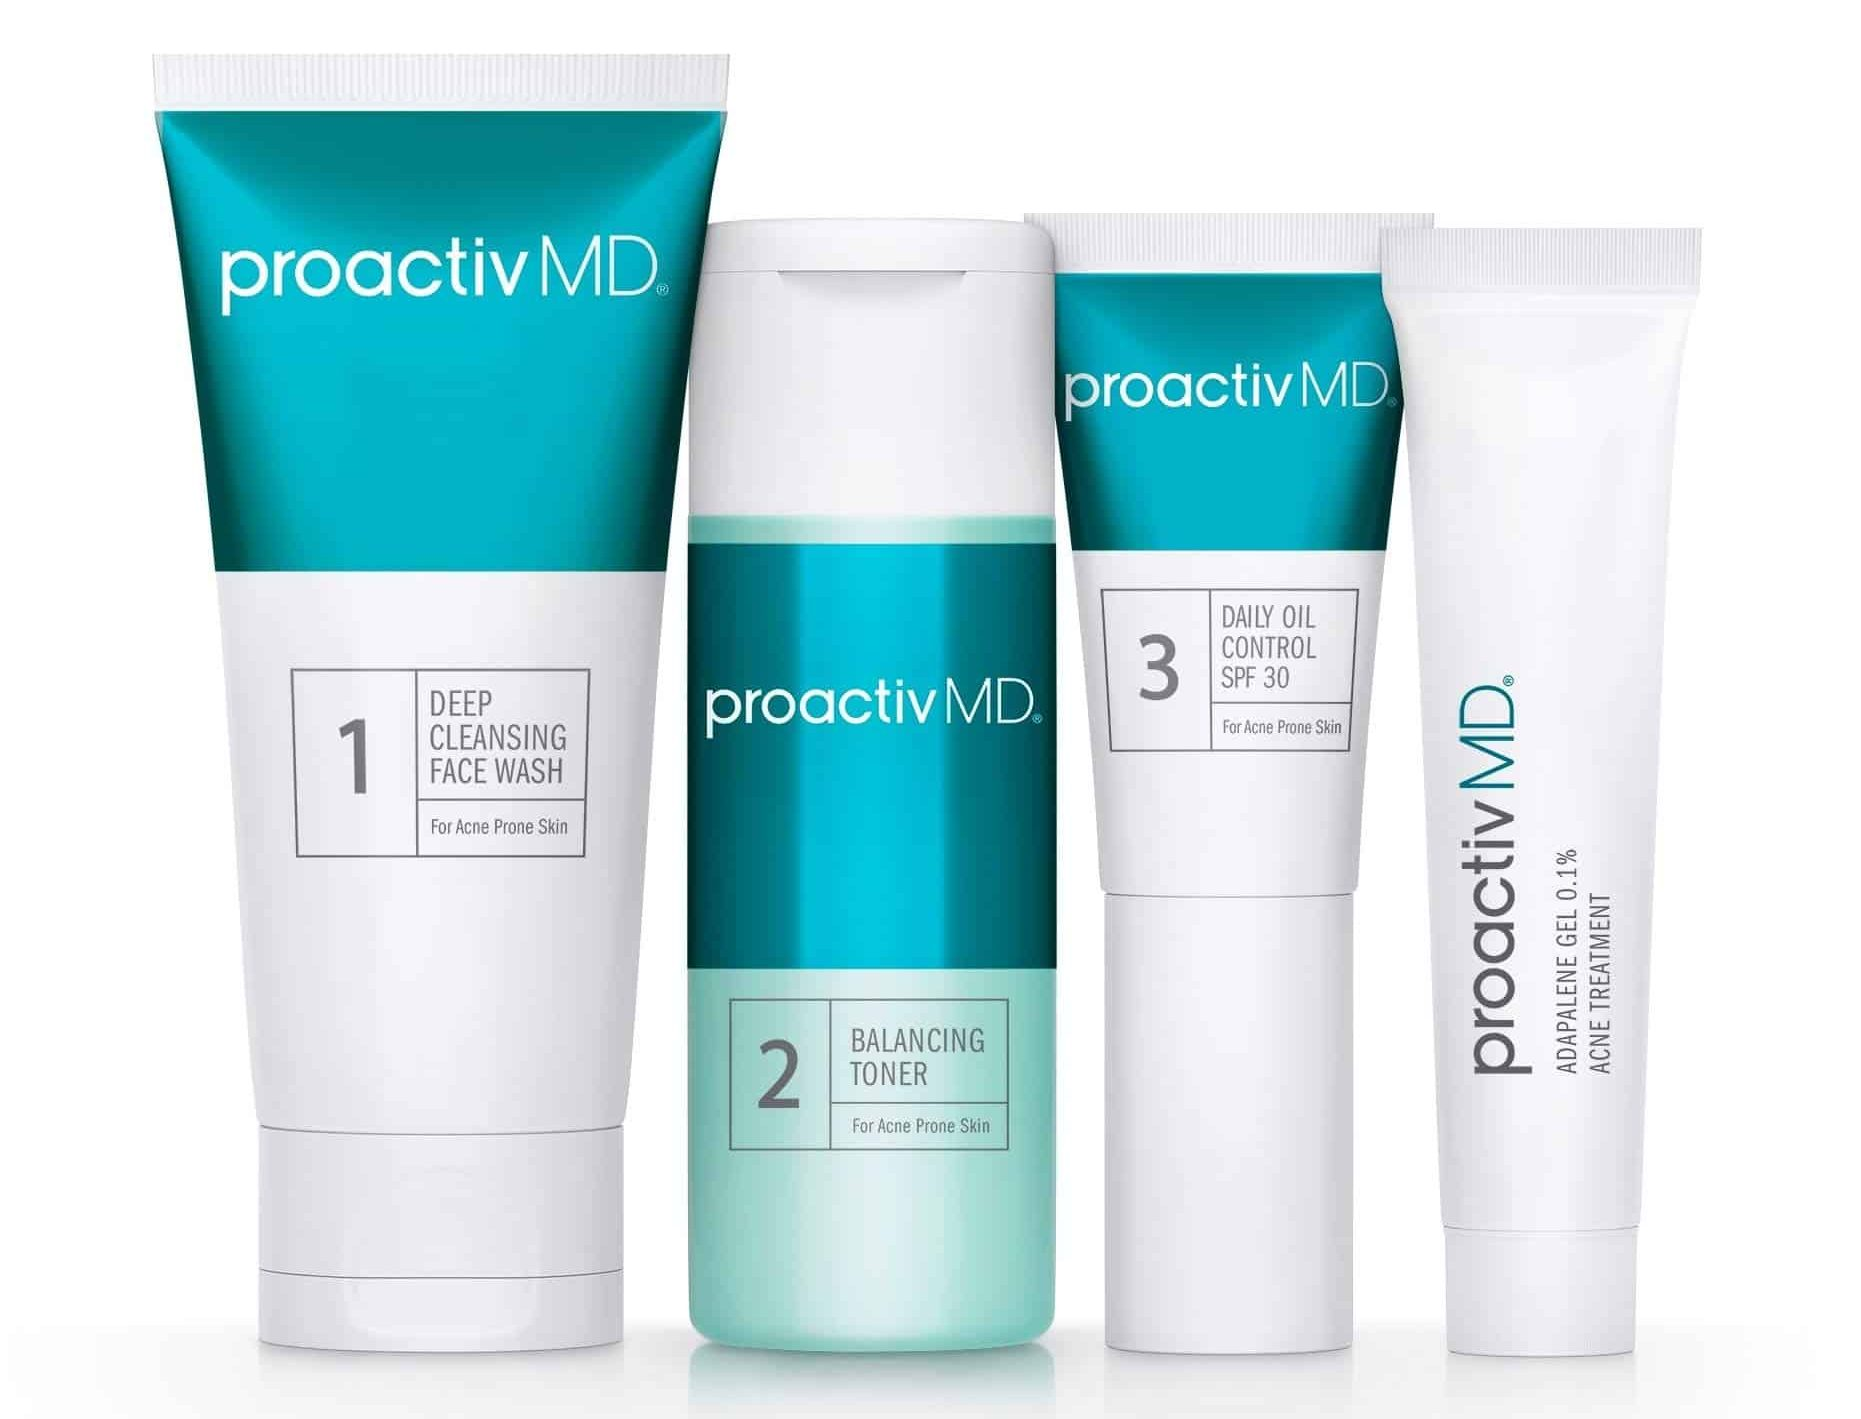 Four bottles of Proactiv MD Essentials System.